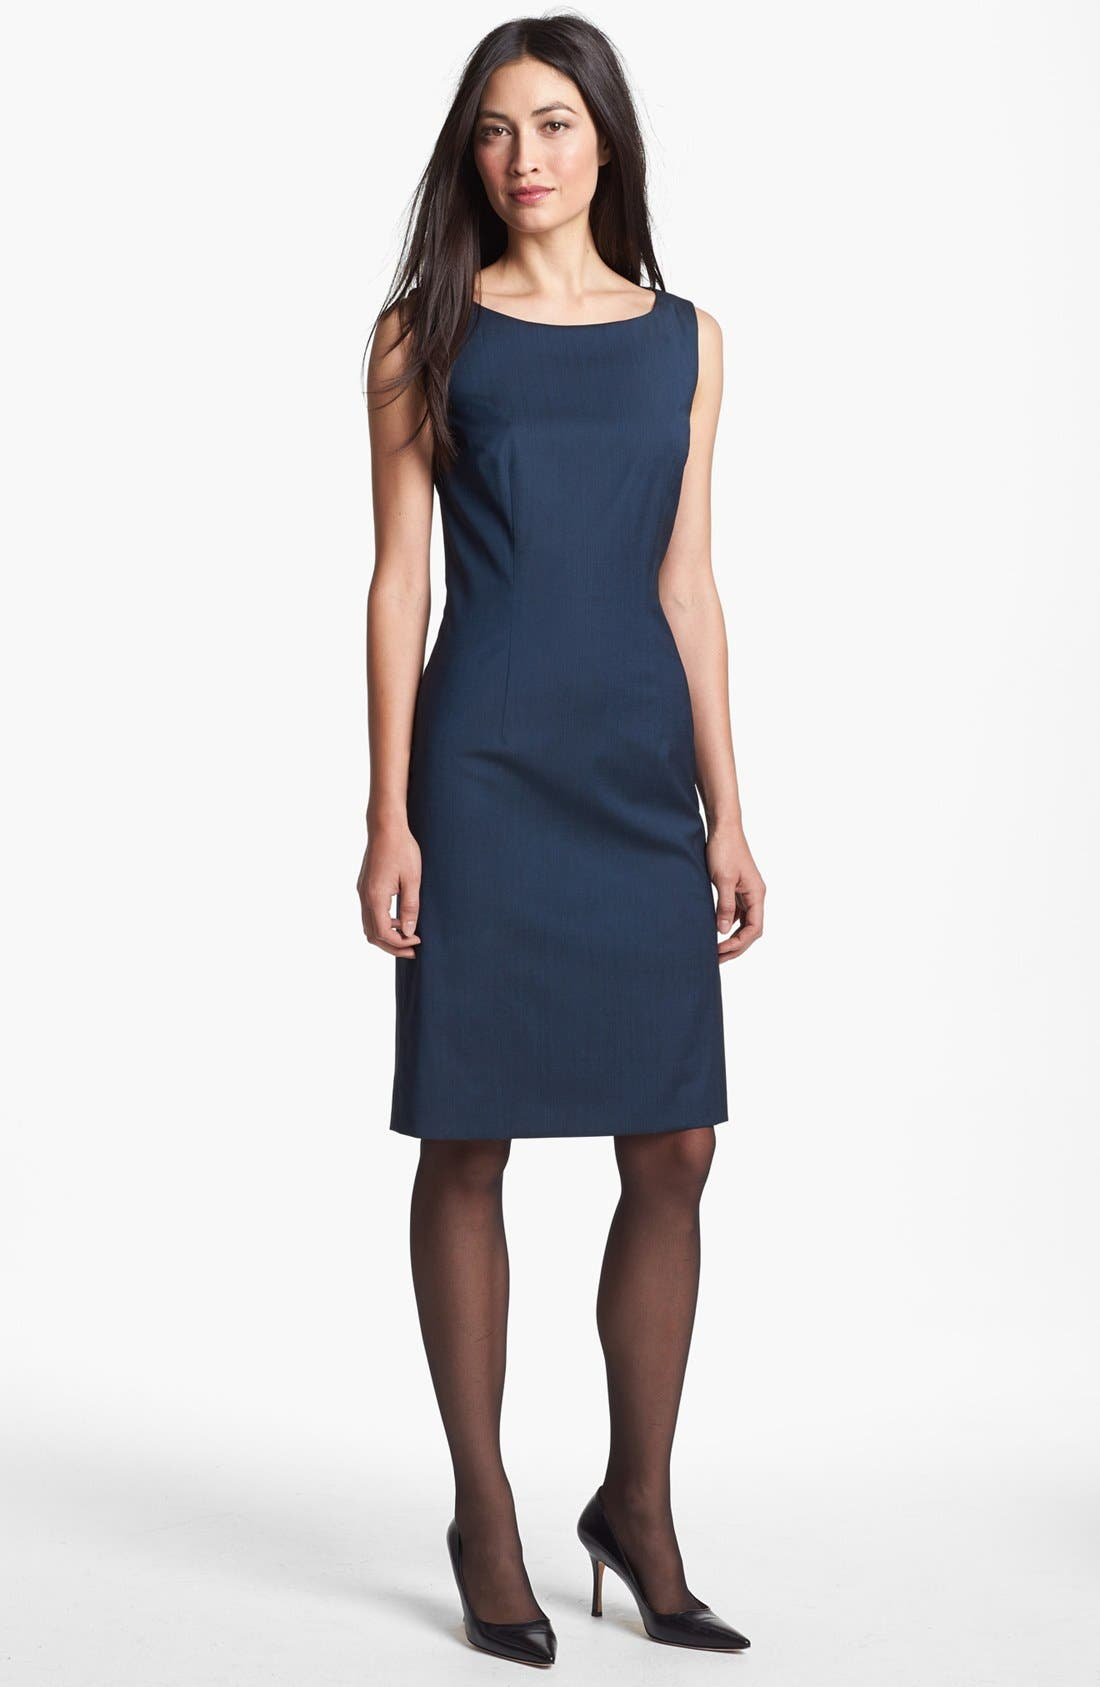 BOSS HUGO BOSS 'Dinoma 1' Sheath Dress, Main, color, 441